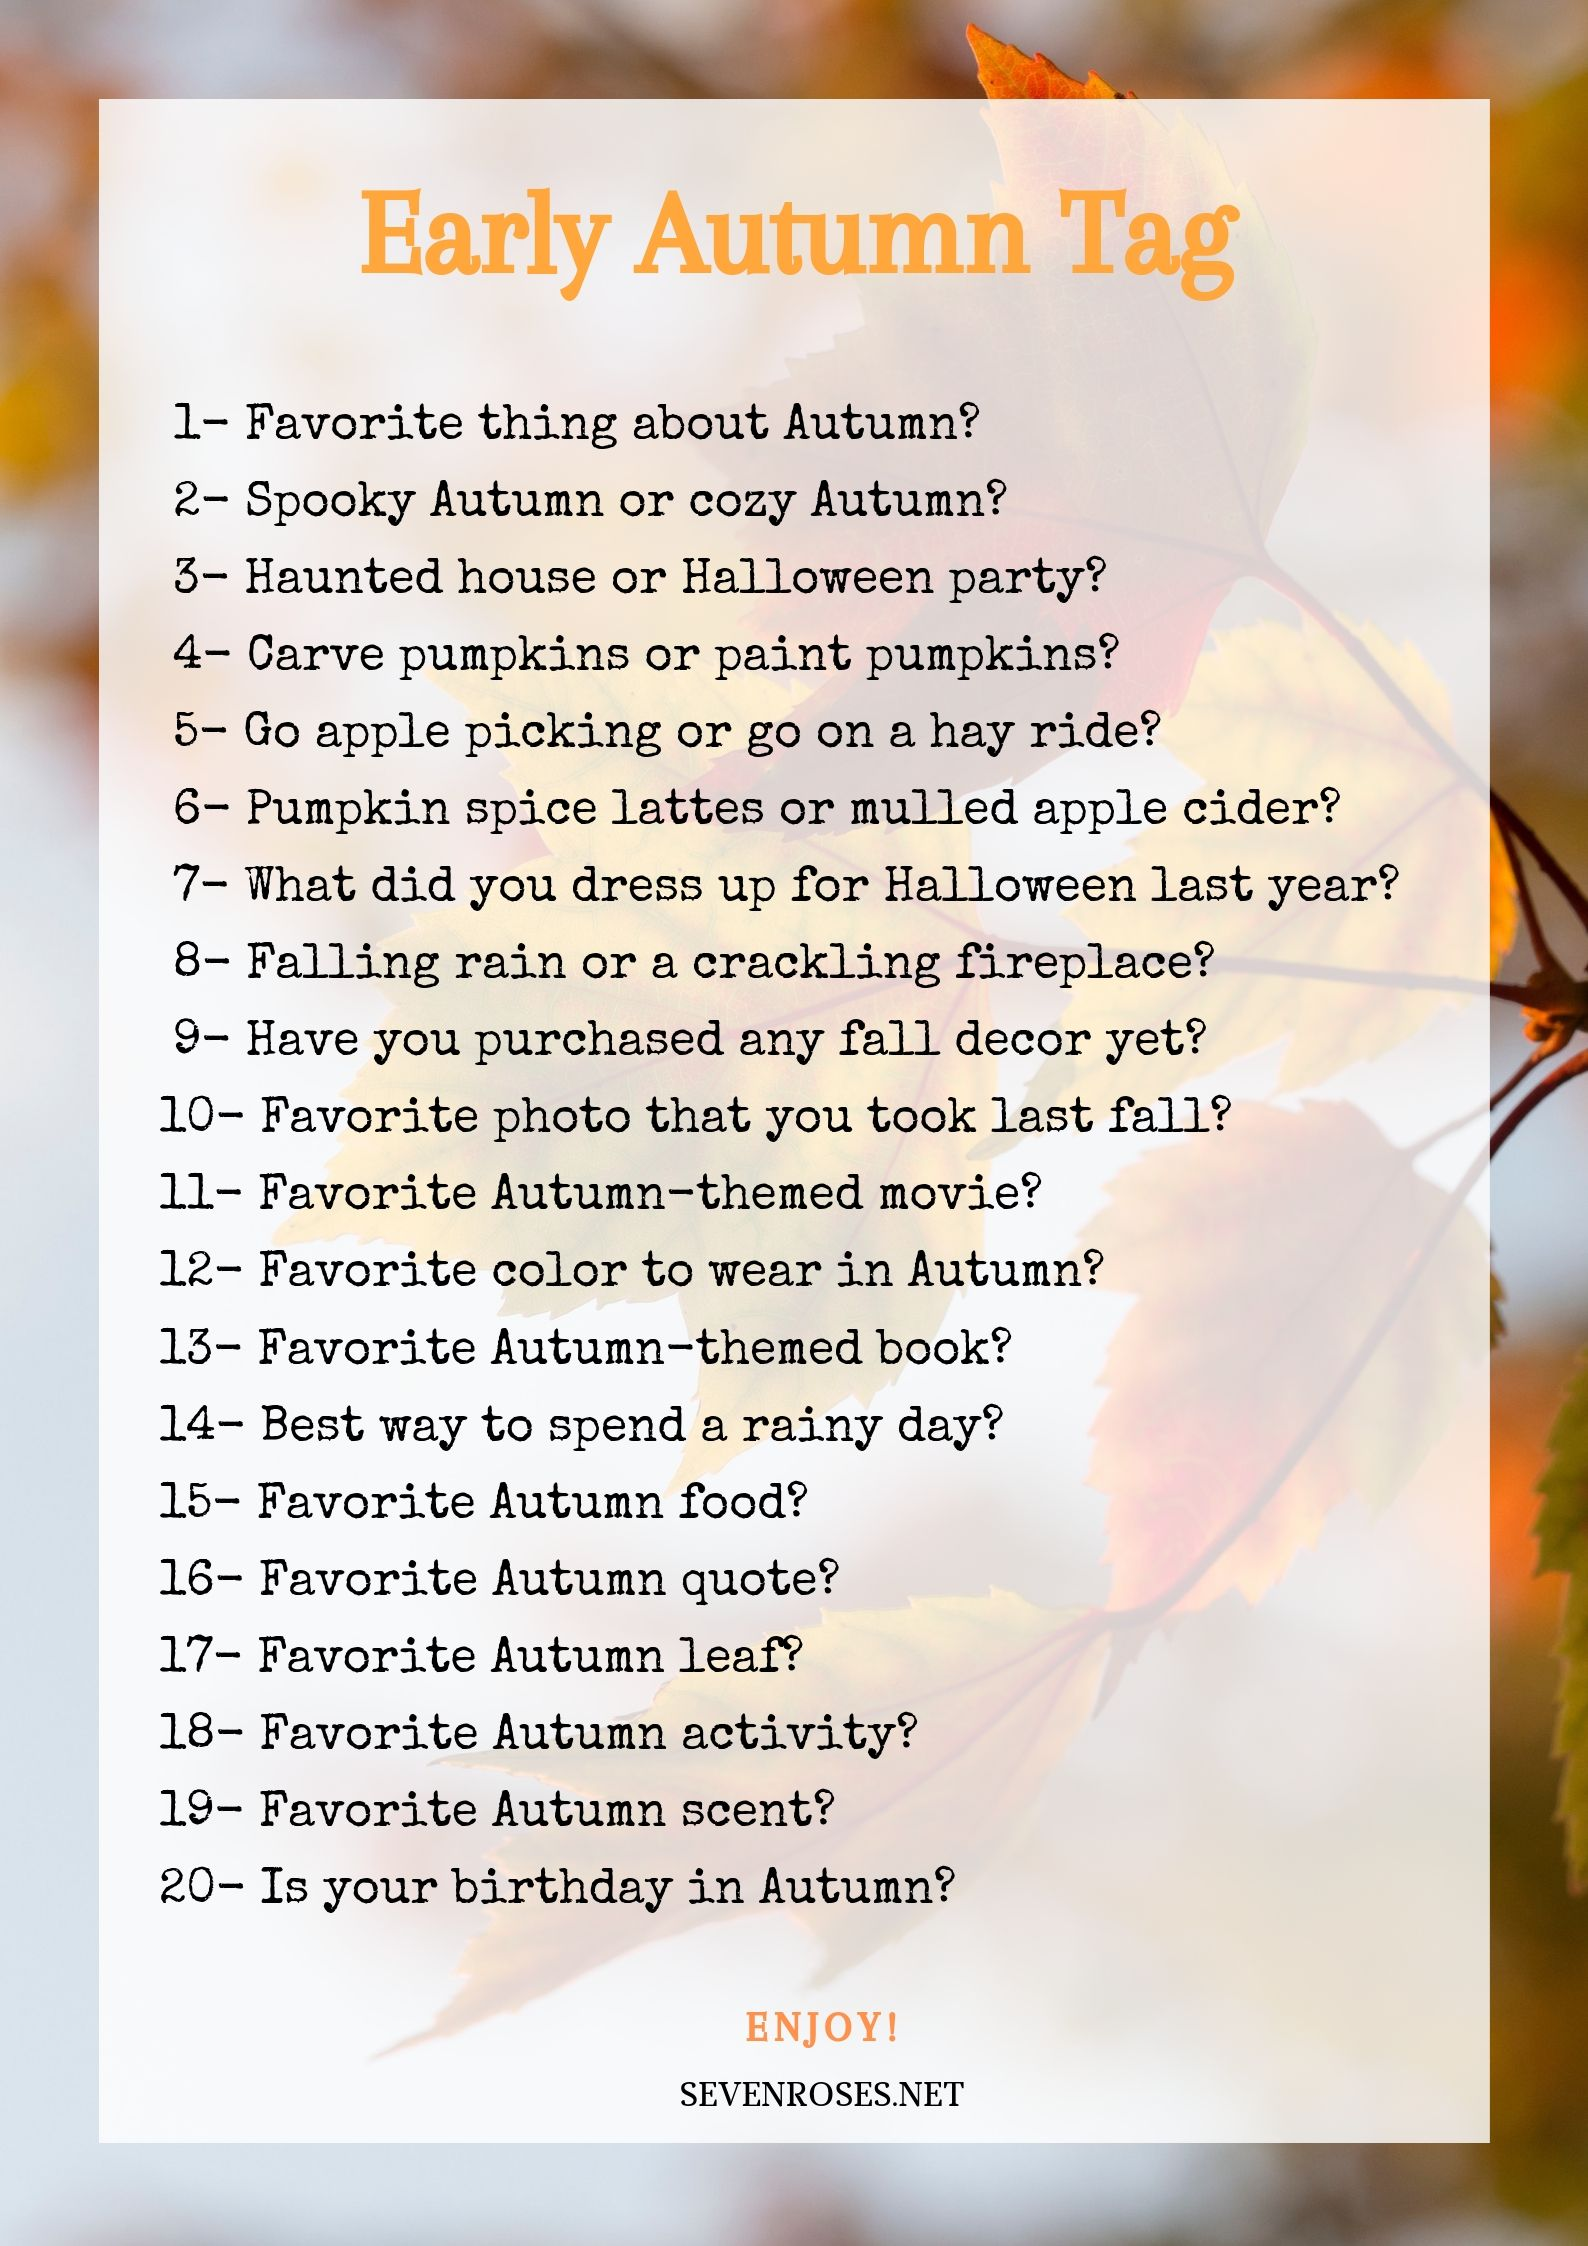 Early Autumn Tag: 20 questions for the Autumn lover